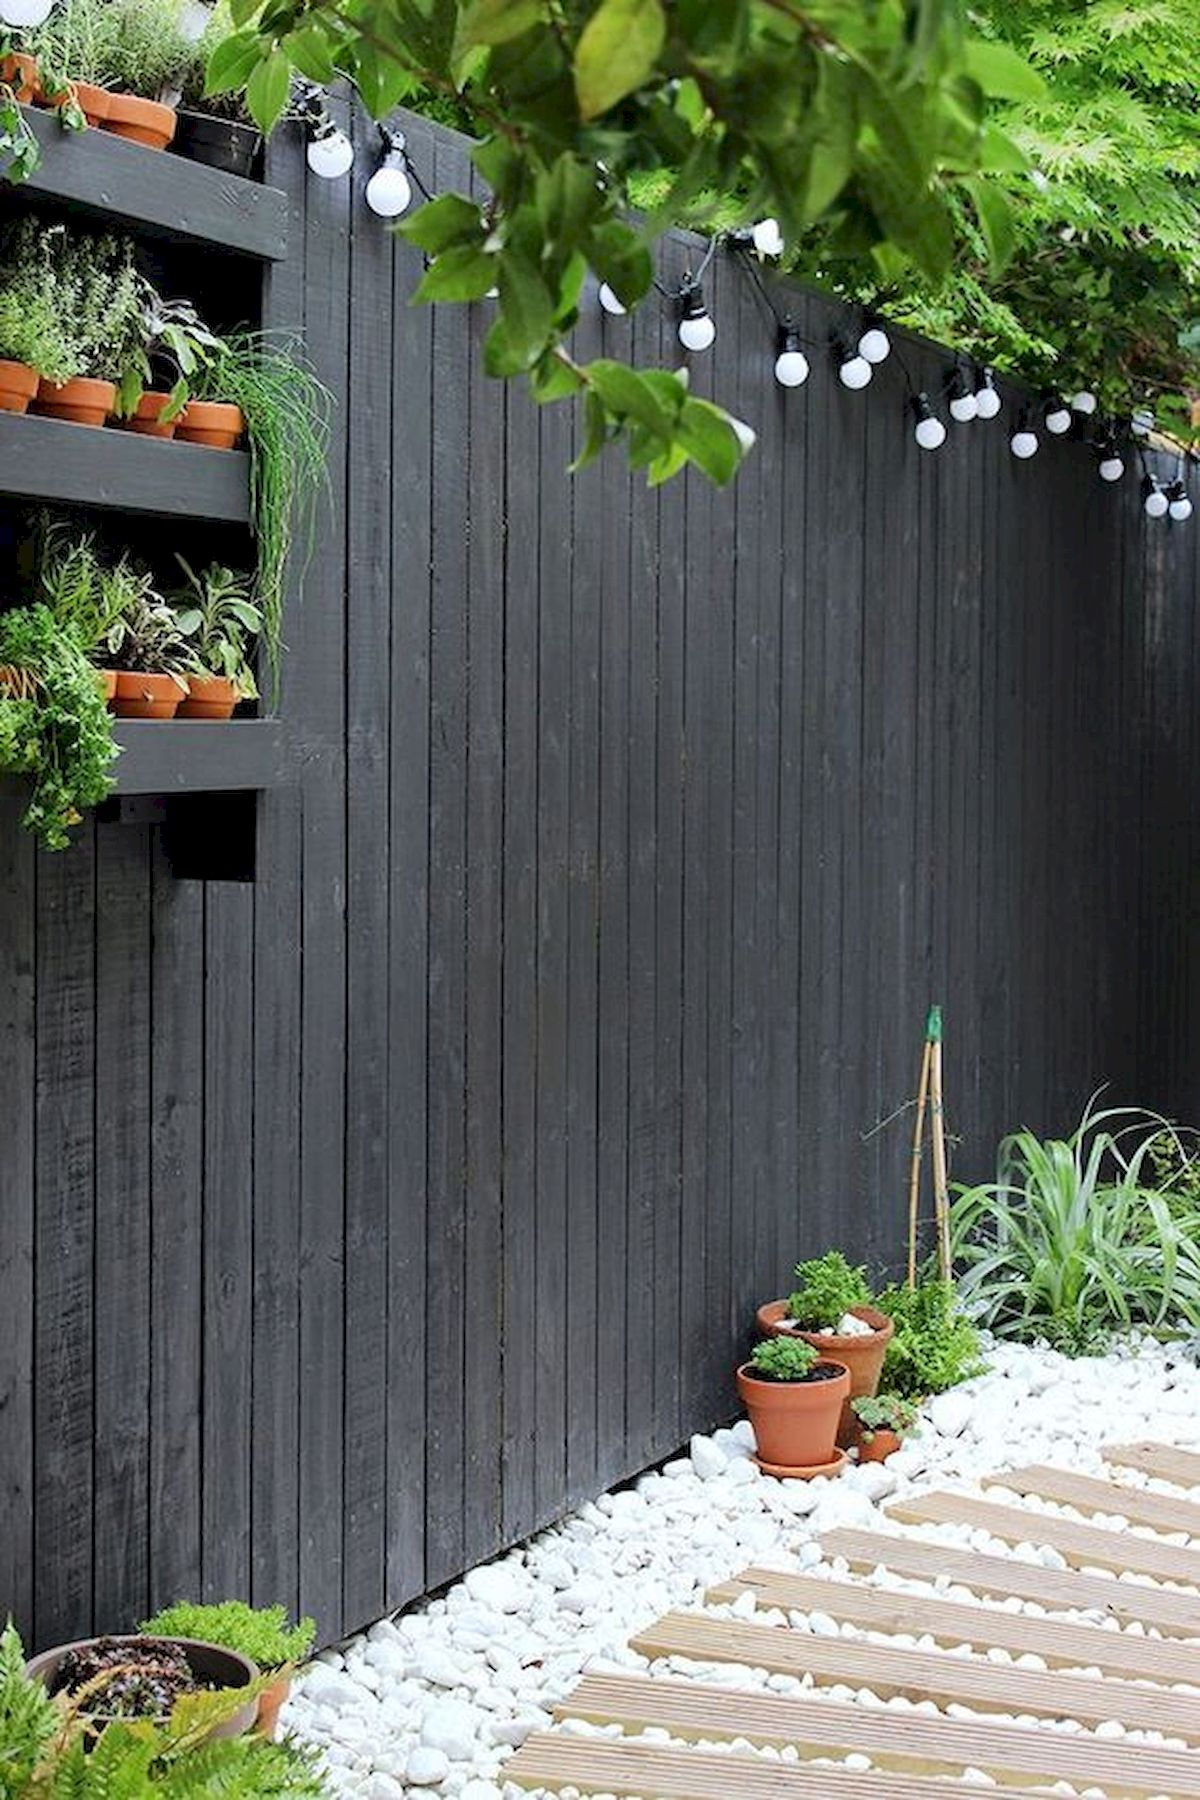 50 Awesome Modern Backyard Garden Design Ideas With Hanging Plants (47)